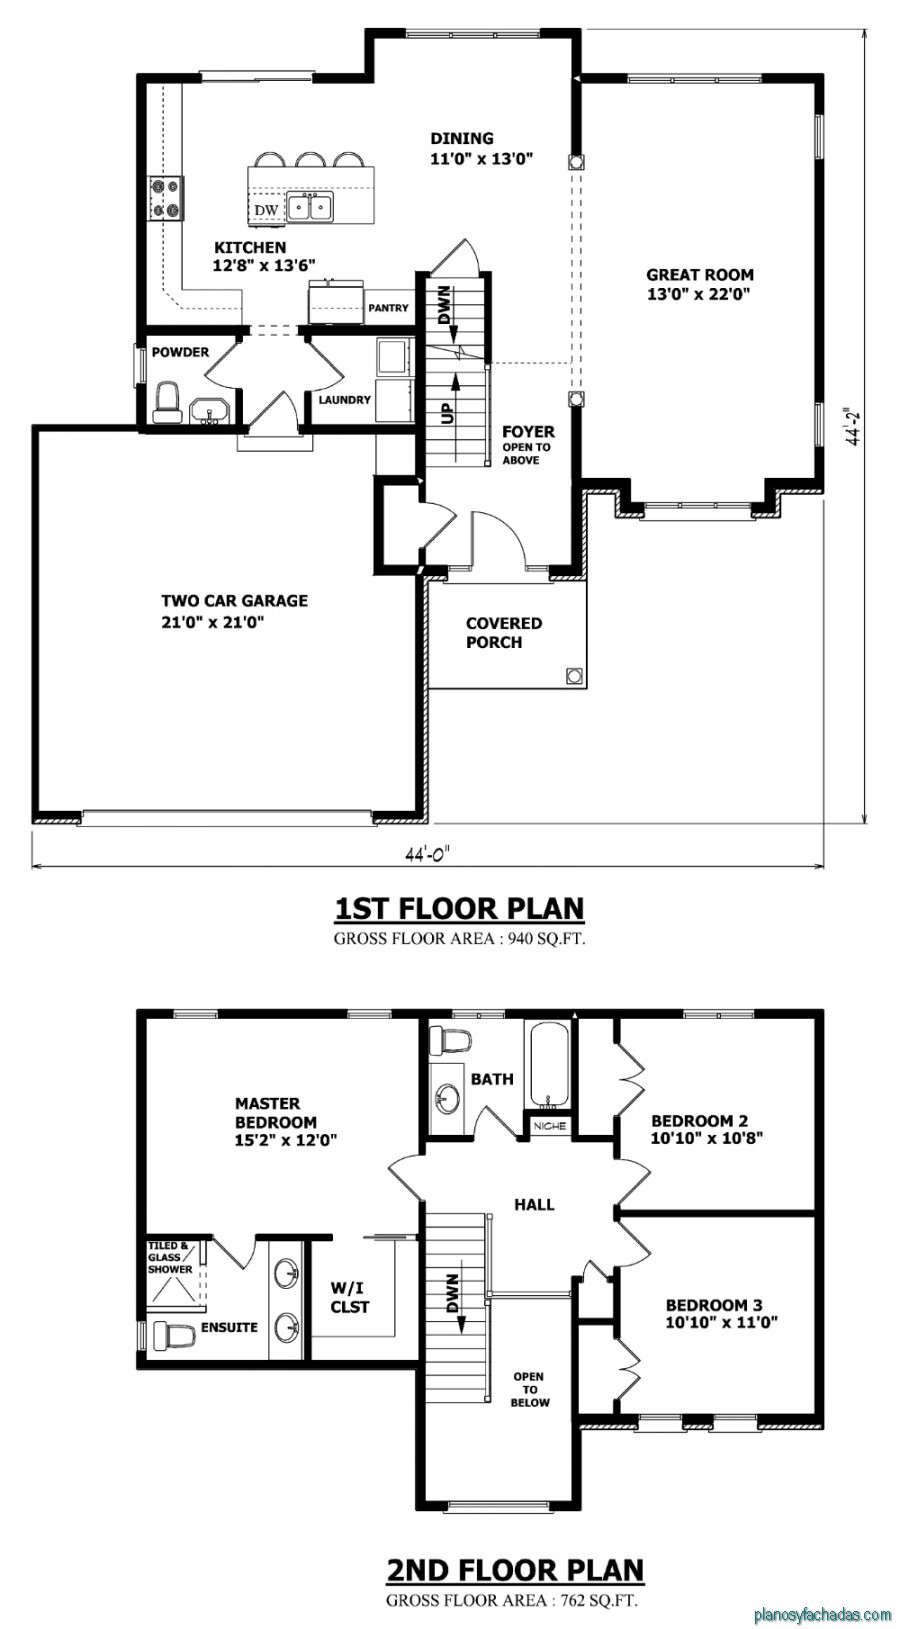 15 planos de casas peque as de dos pisos planos y for Two story house layout